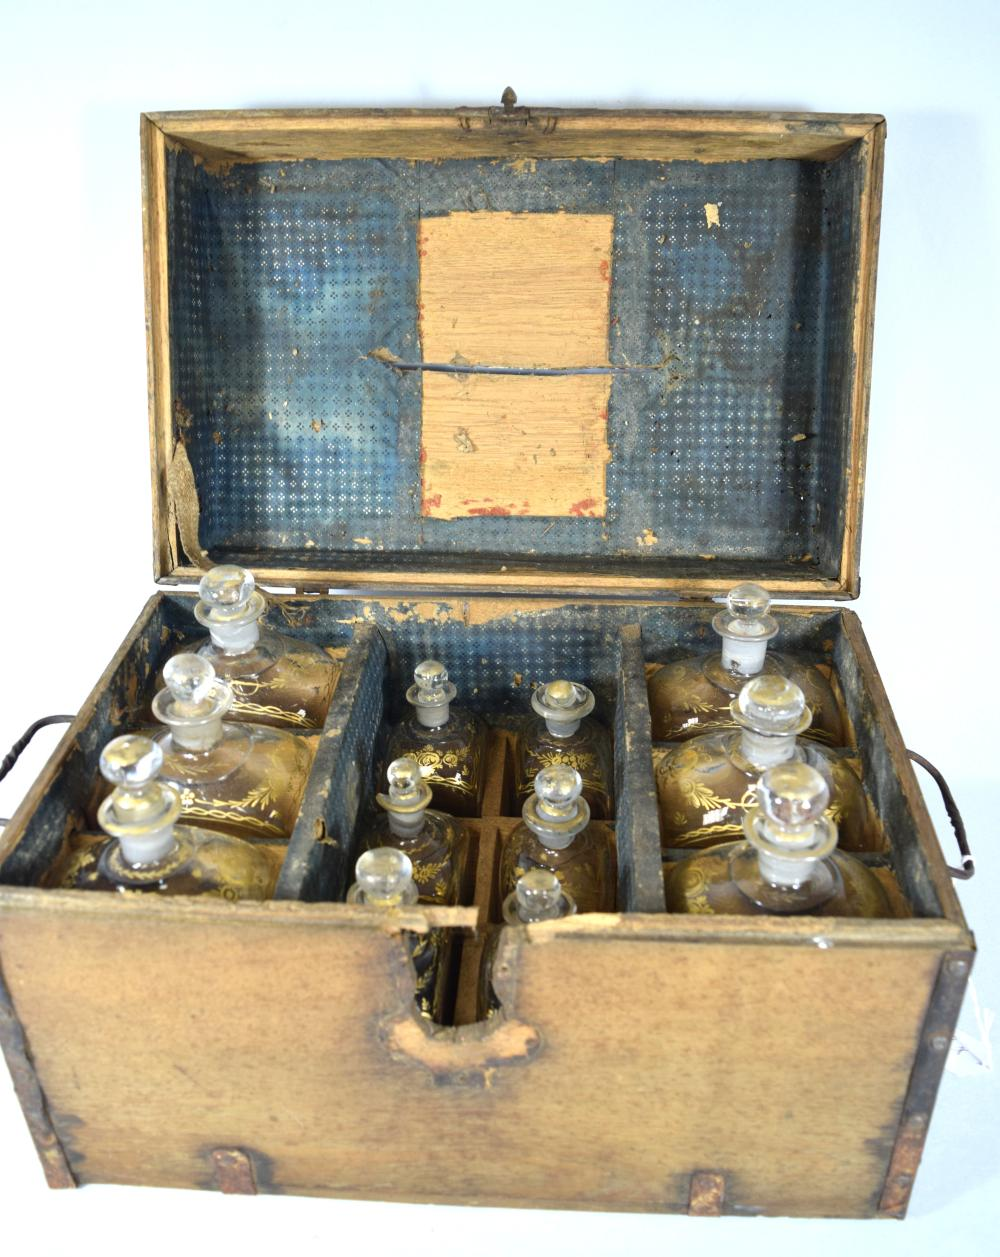 EARLY 19TH C SEA CAPTAIN'S LIQUOR CHEST: